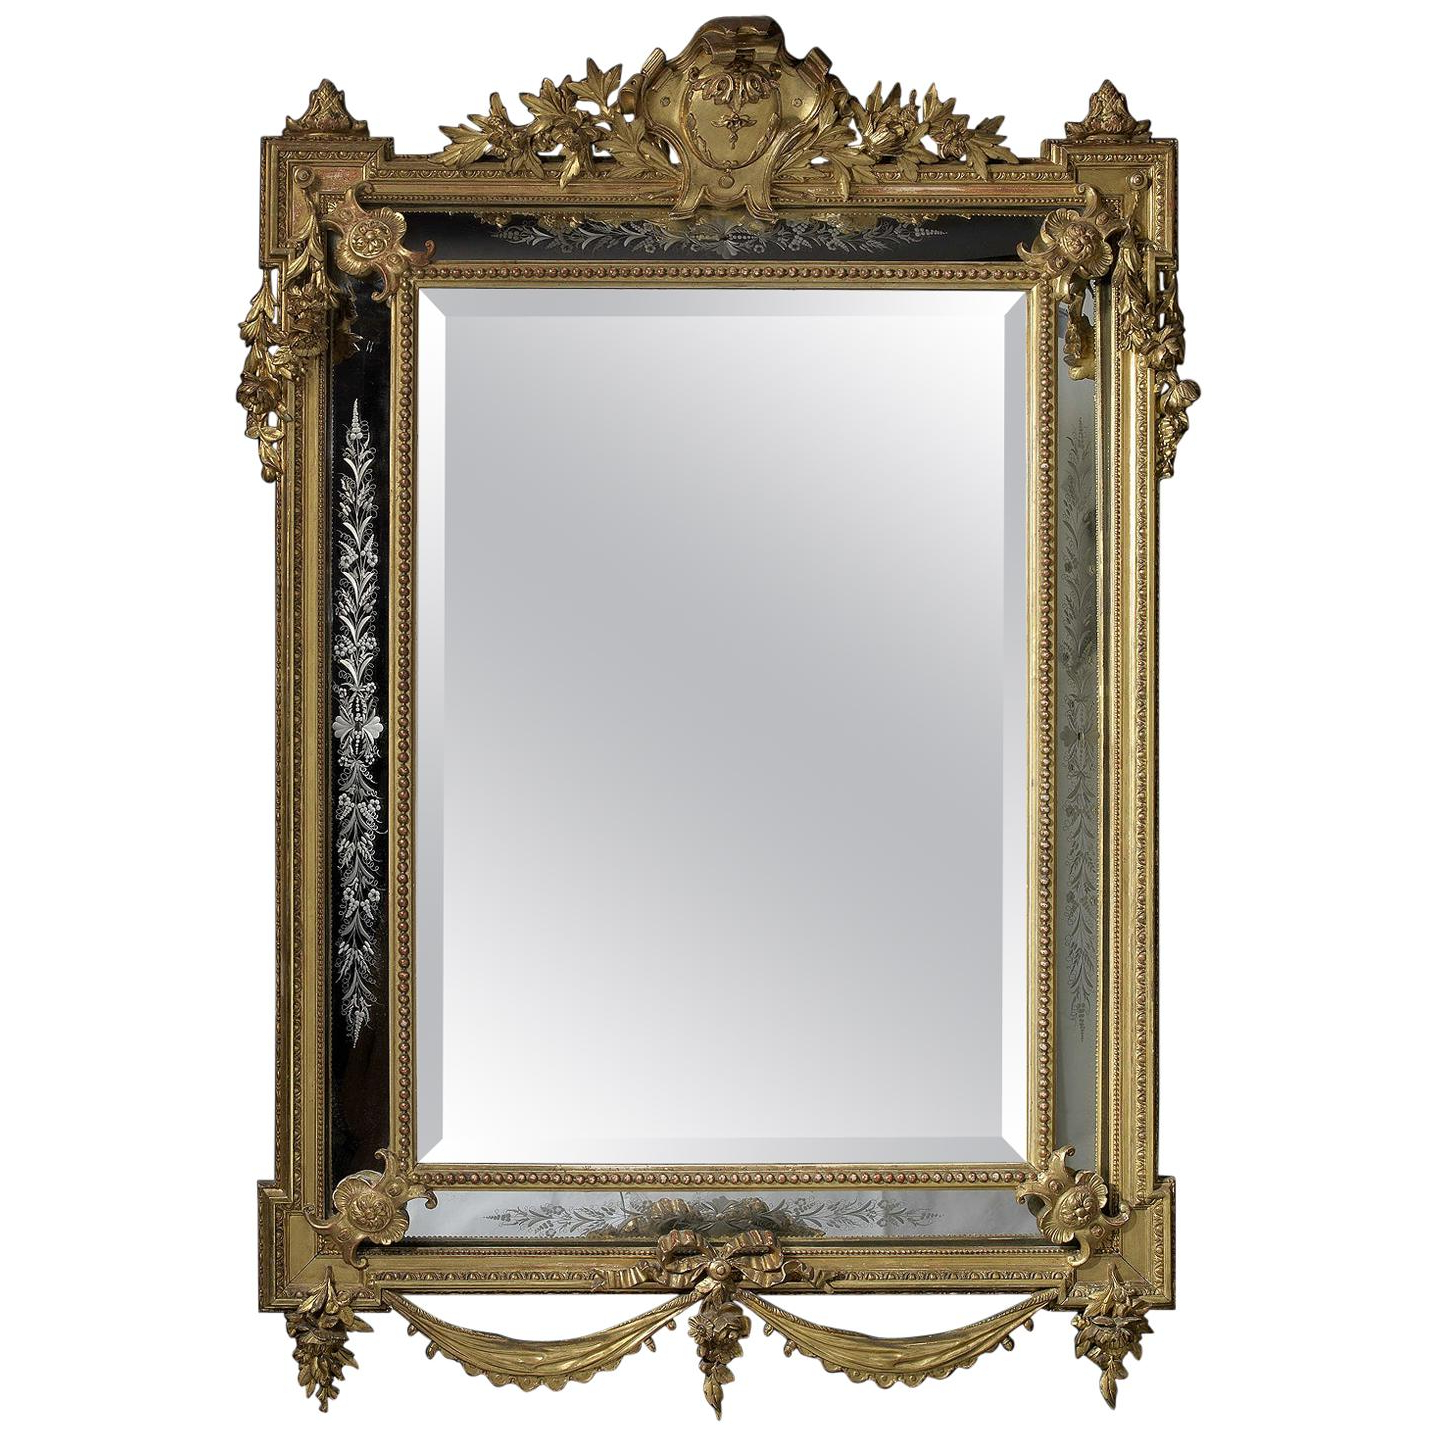 Antique And Vintage Wall Mirrors – 13,029 For Sale At 1stdibs For Newest Old Fashioned Wall Mirrors (View 7 of 20)